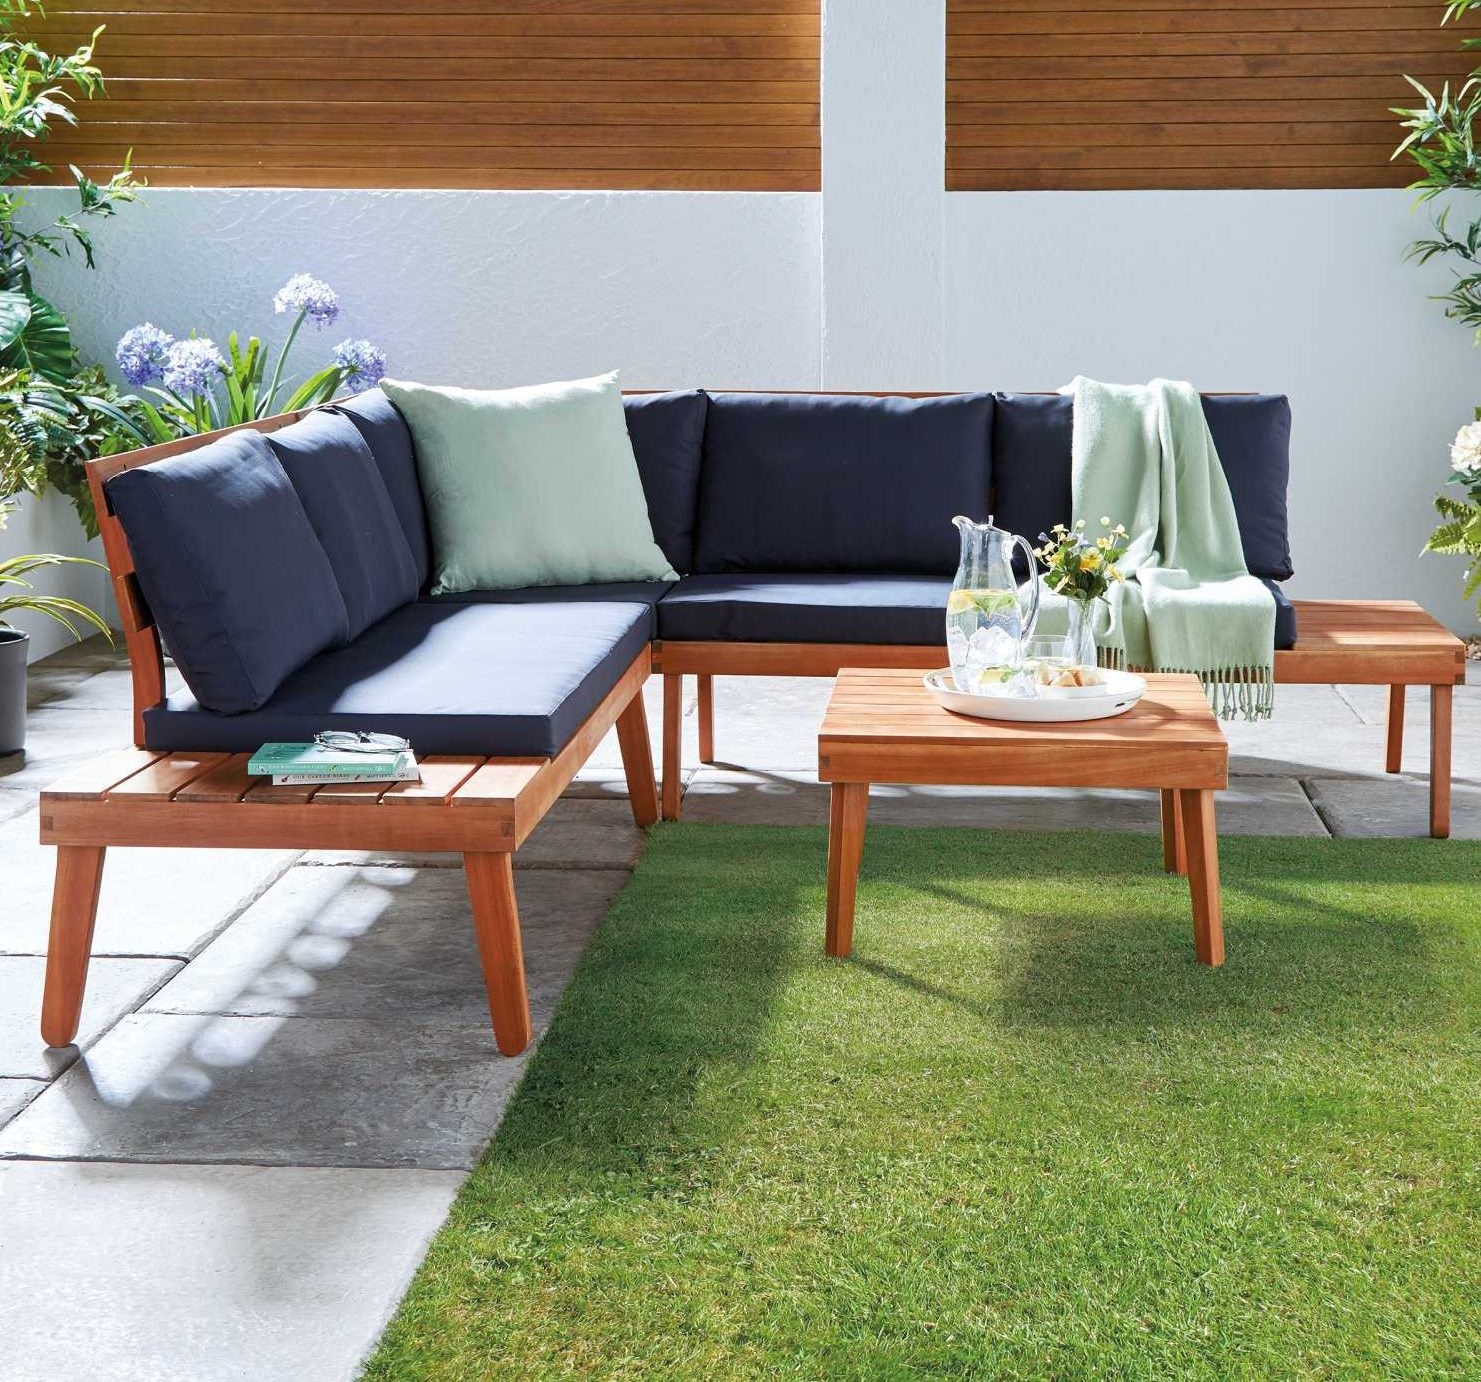 Aldi Is Selling A Stylish Wooden Corner Sofa And Table Set For Your Garden - Garden Furniture Clearance Argos